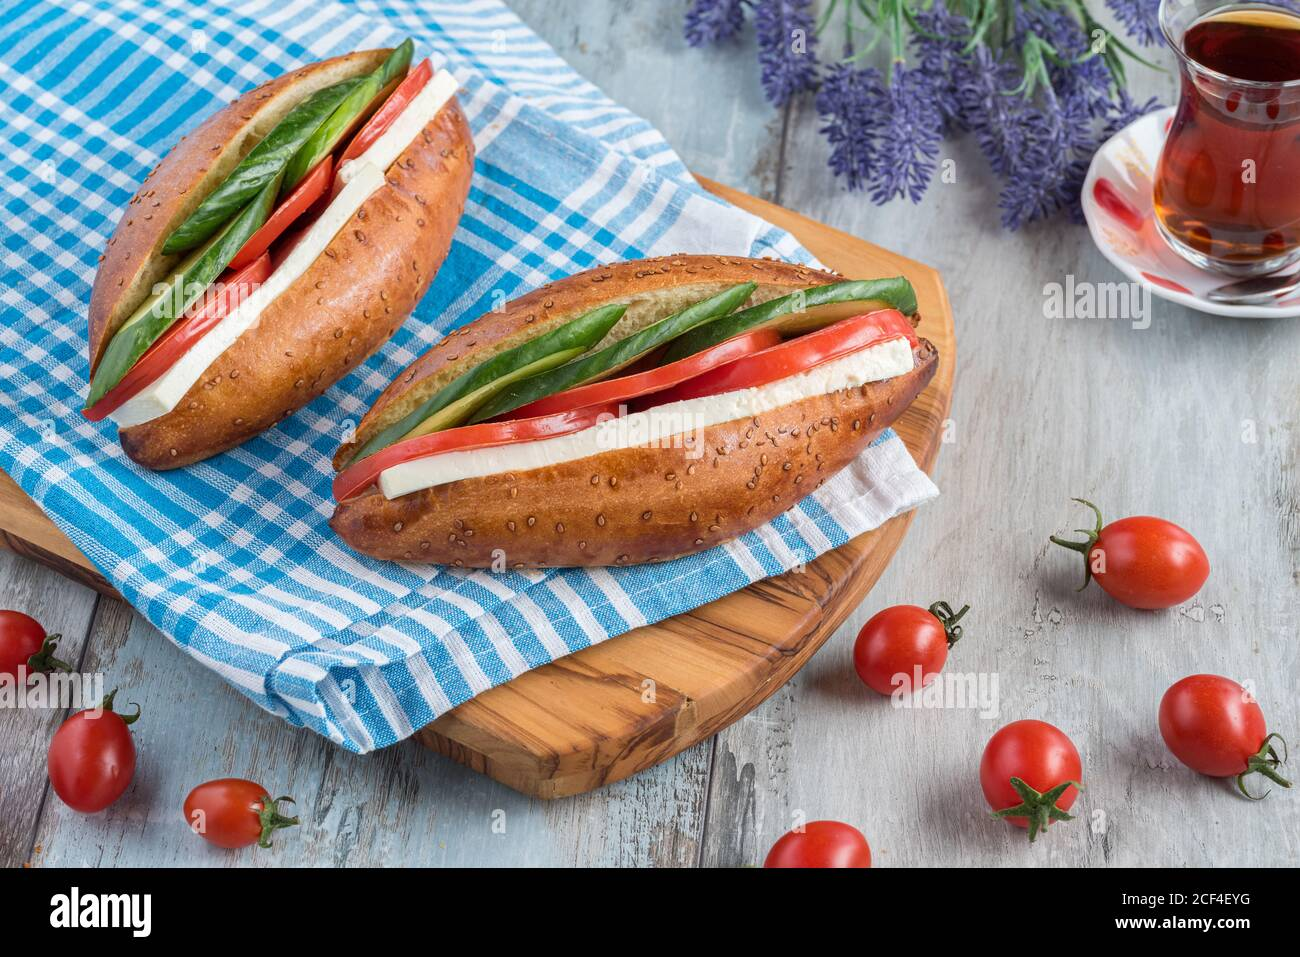 Kumru Traditional Turkish Izmir Sandwich And Turkish Tea Stock Photo Alamy